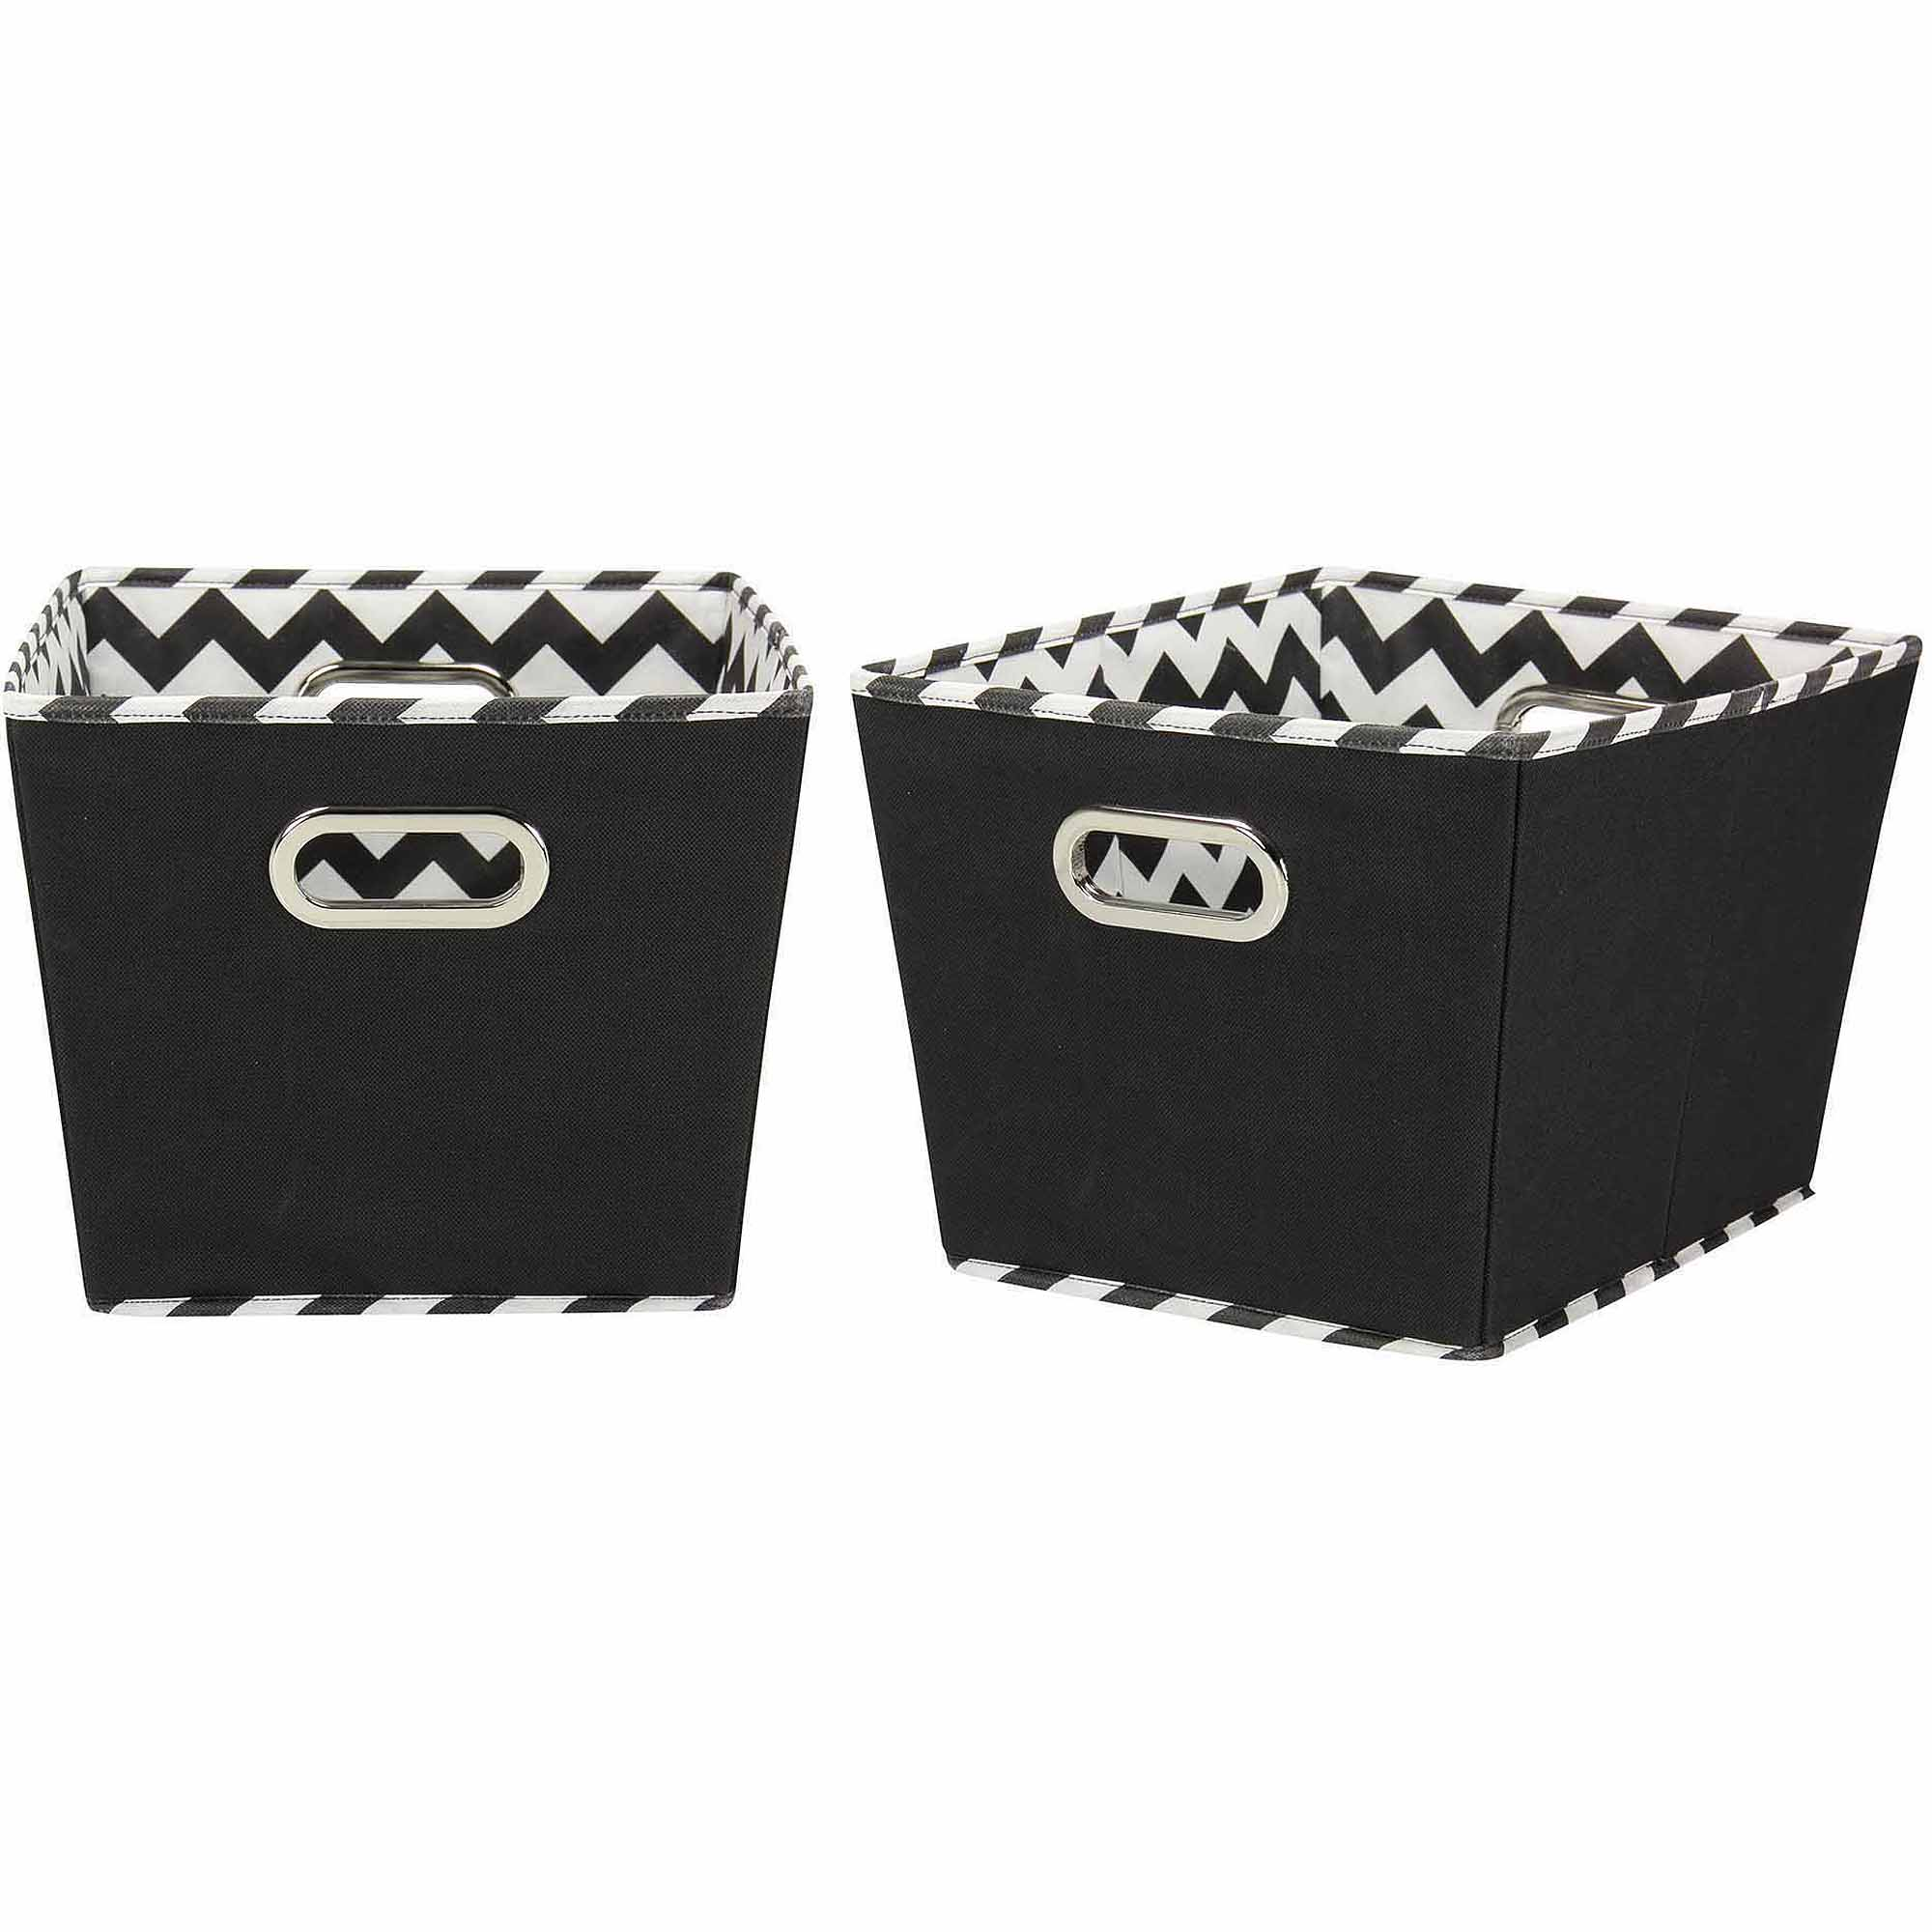 Household Essentials Decorative Storage Bins, 2pk, Black and Chevron Medium